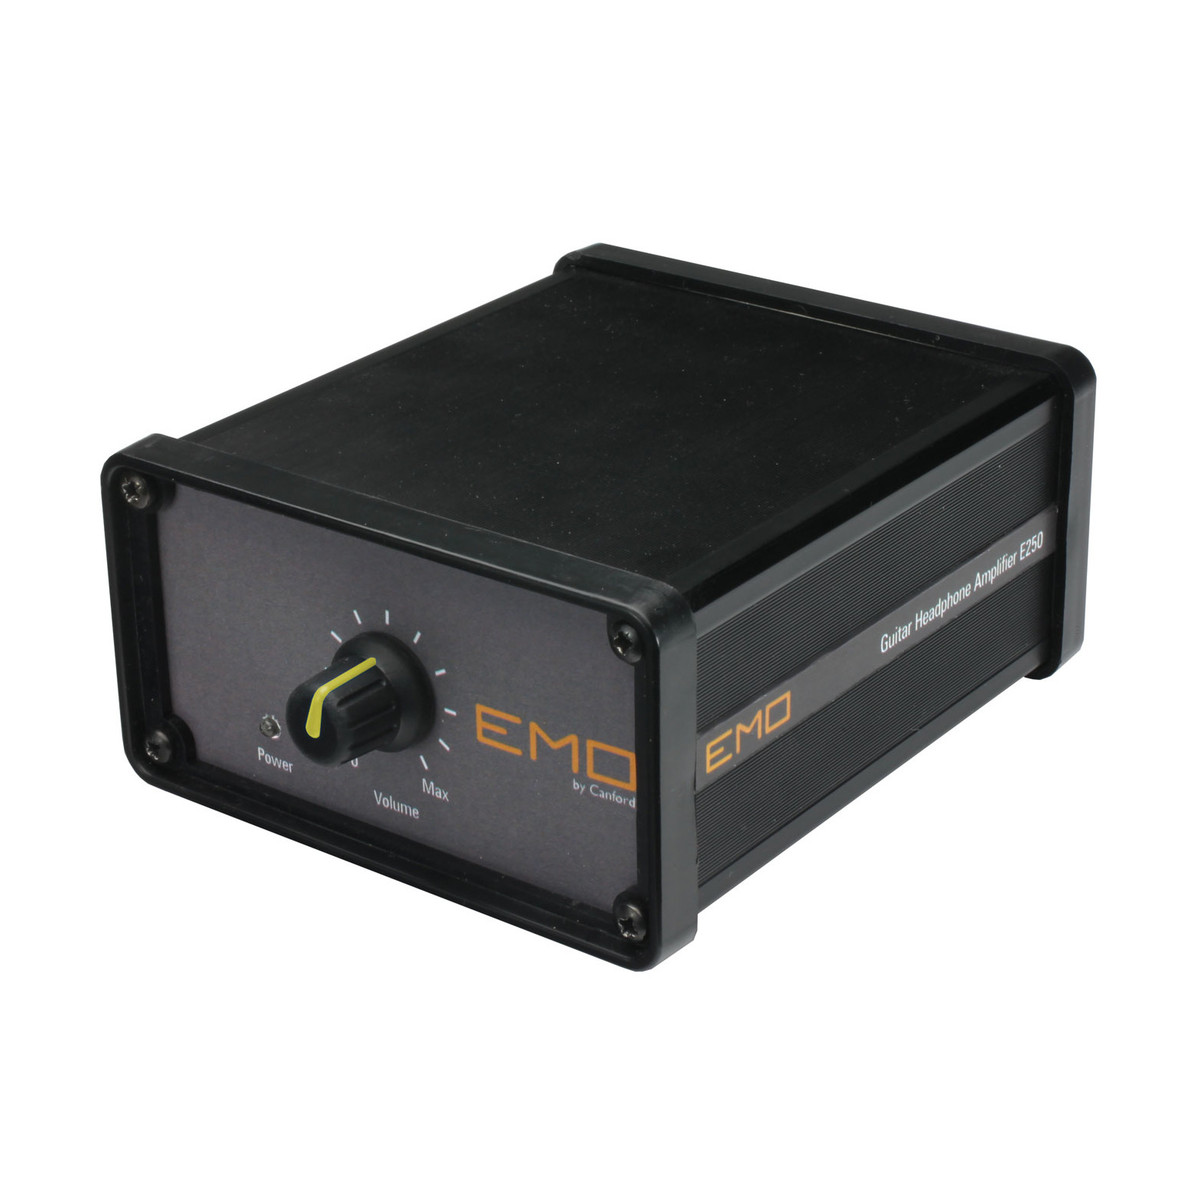 emo e250 guitar headphone amplifier at gear4music. Black Bedroom Furniture Sets. Home Design Ideas